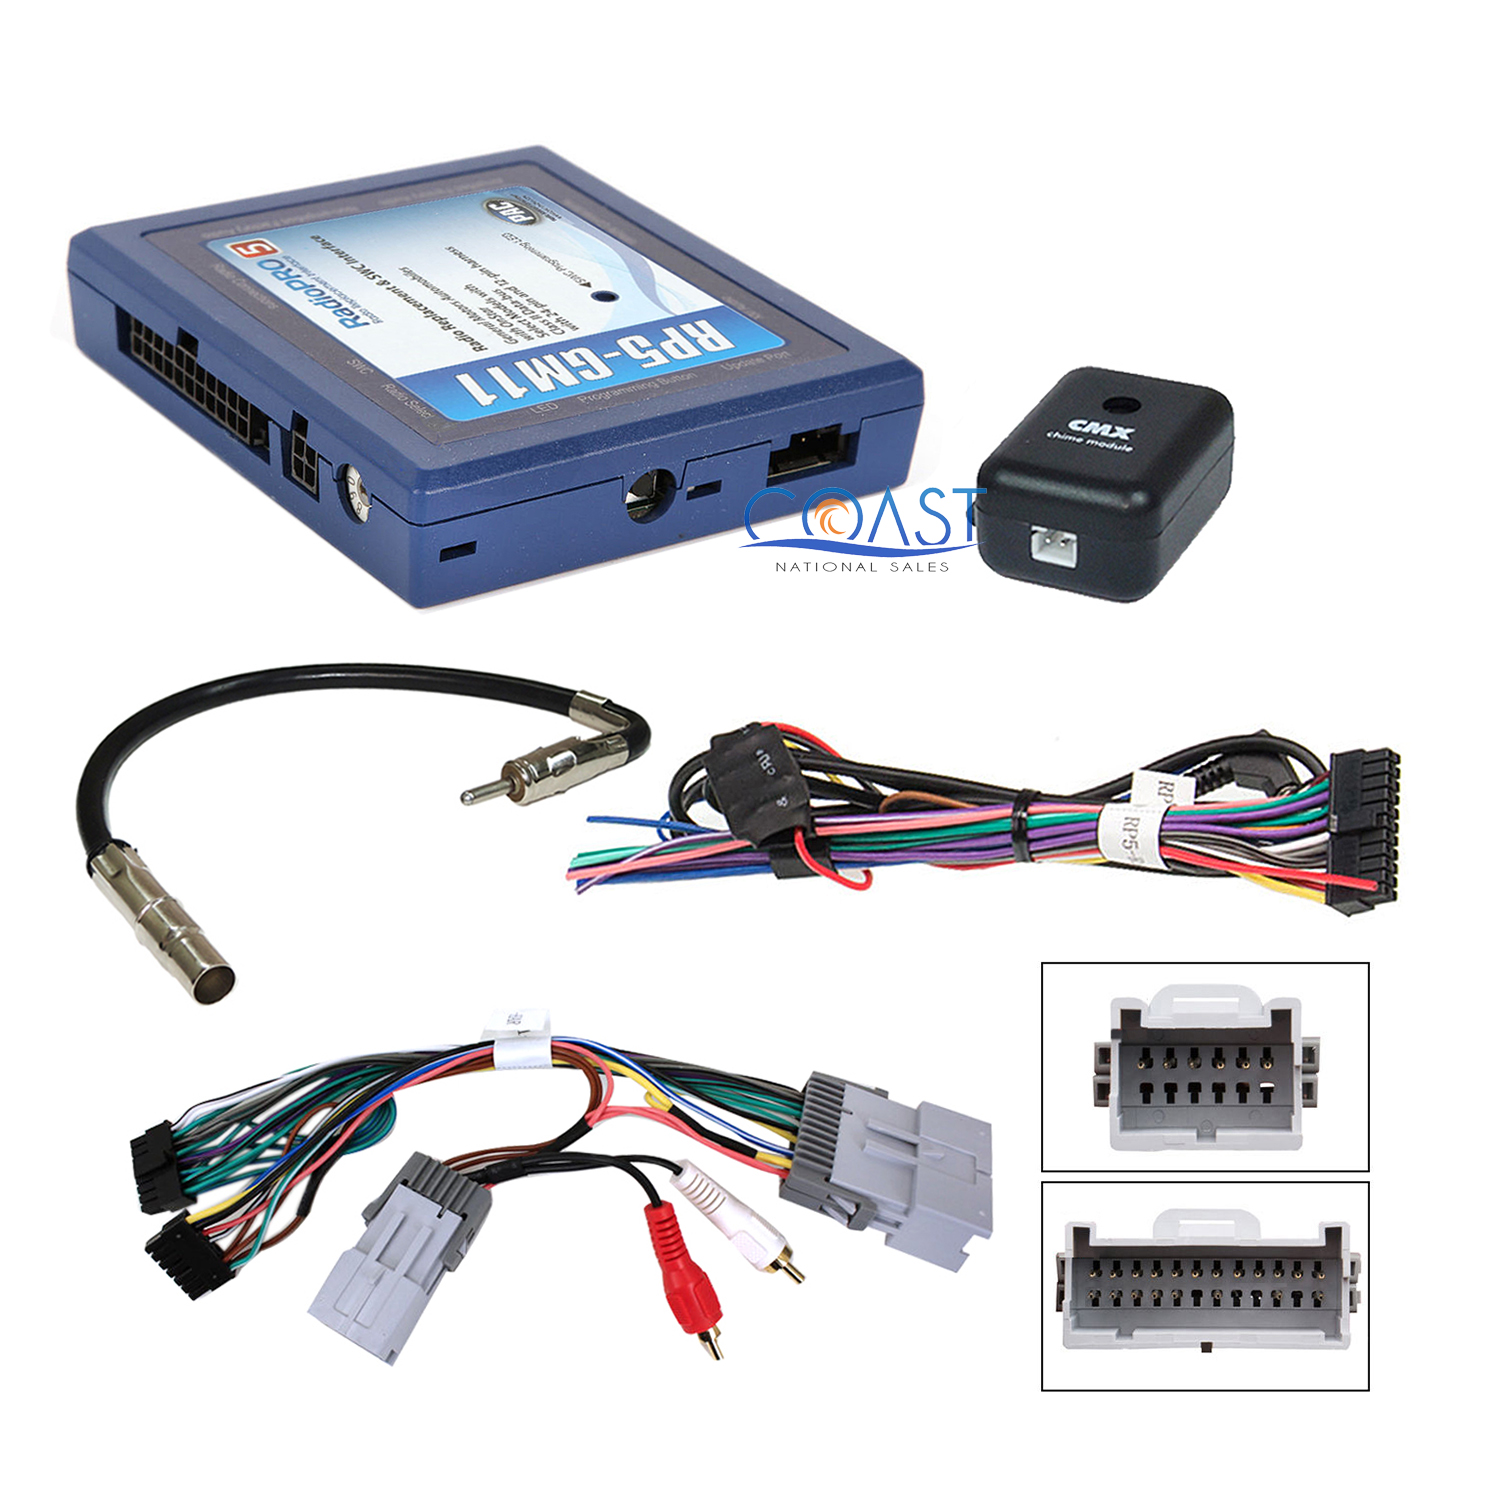 PAC RP5-GM32 Radio Replacement Interface With Built In OnStar Retention//Pre Programmed Steering Wheel Control Retention//Navigation Output for Select GM LAN Vehicles